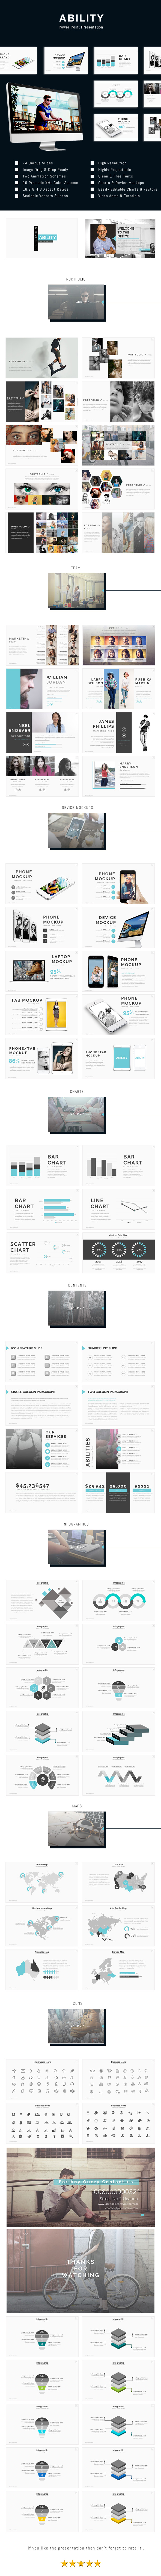 Ability Power Point Presentation Template - Business PowerPoint Templates